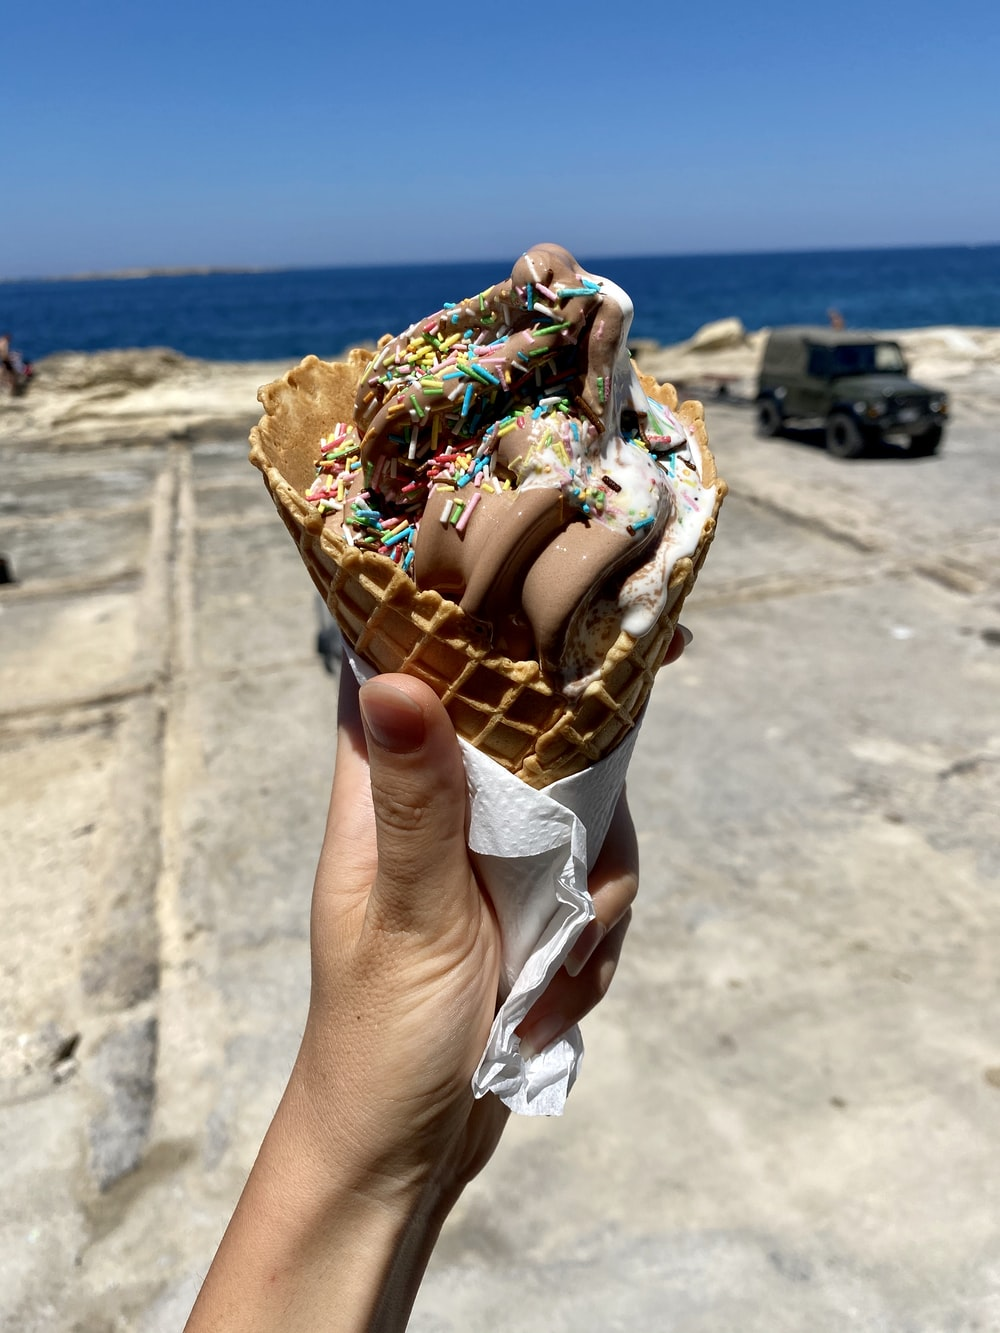 person holding ice cream cone with chocolate and strawberry ice cream